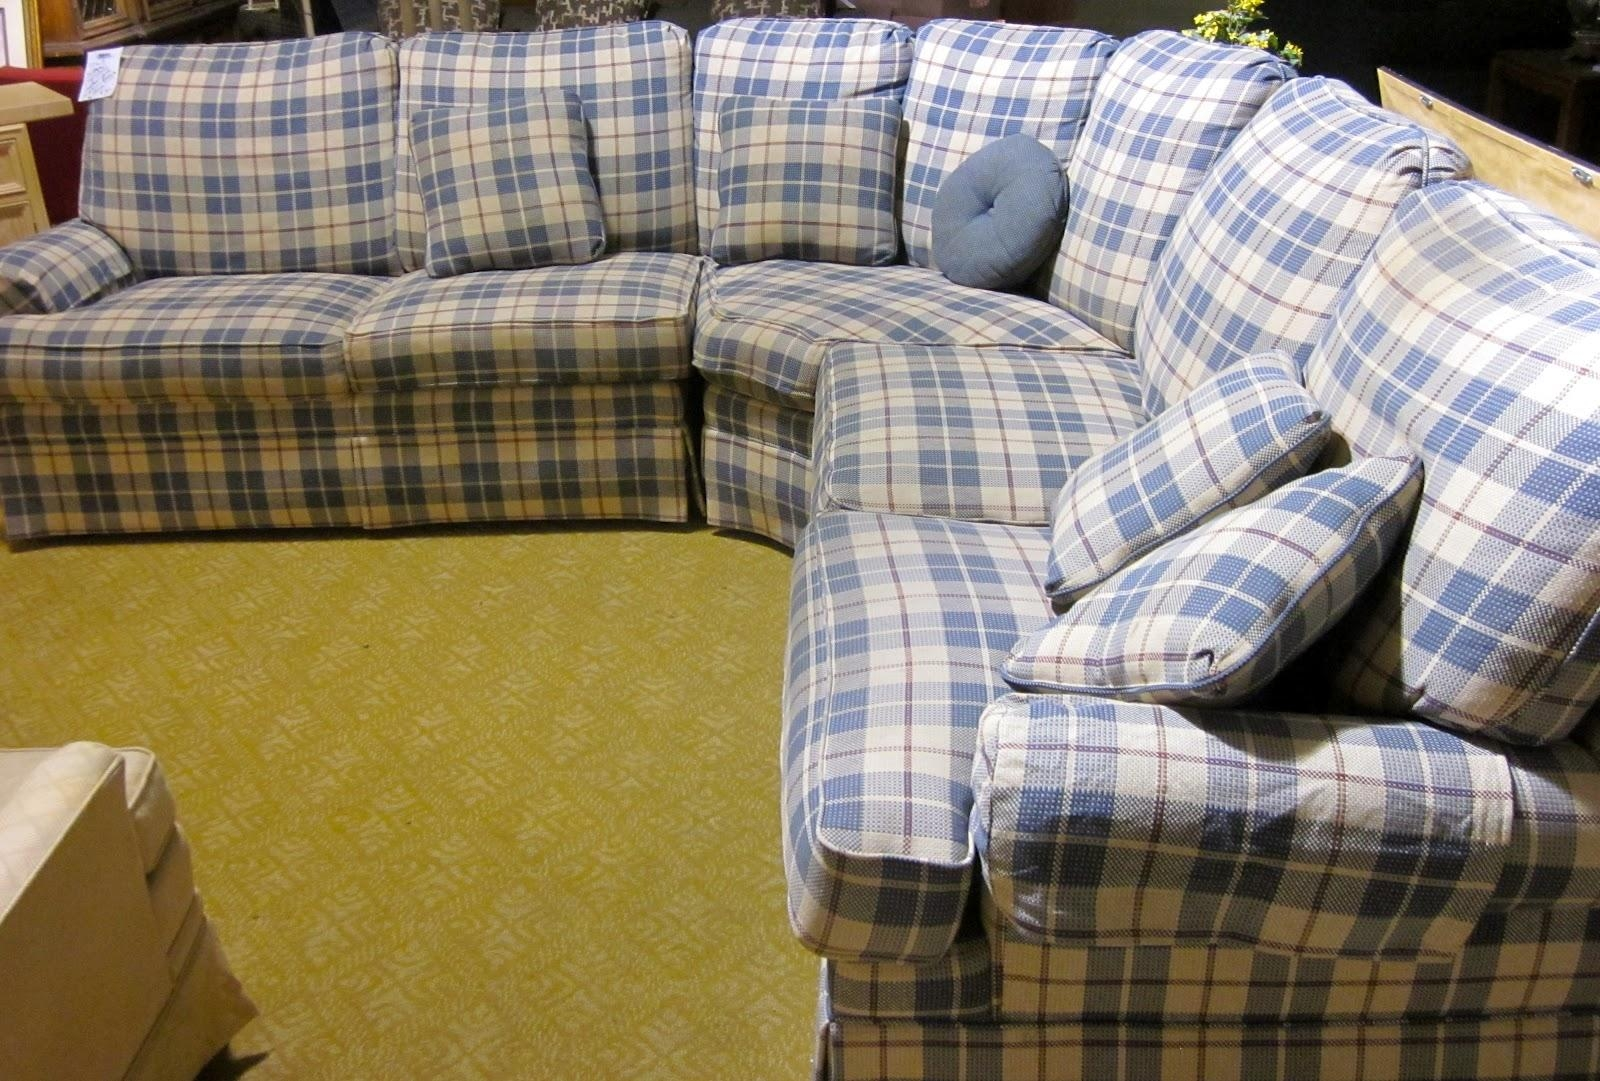 Blue Plaid Sofa With Inspiration Design 26142 | Kengire For Blue Plaid Sofas (Image 6 of 20)